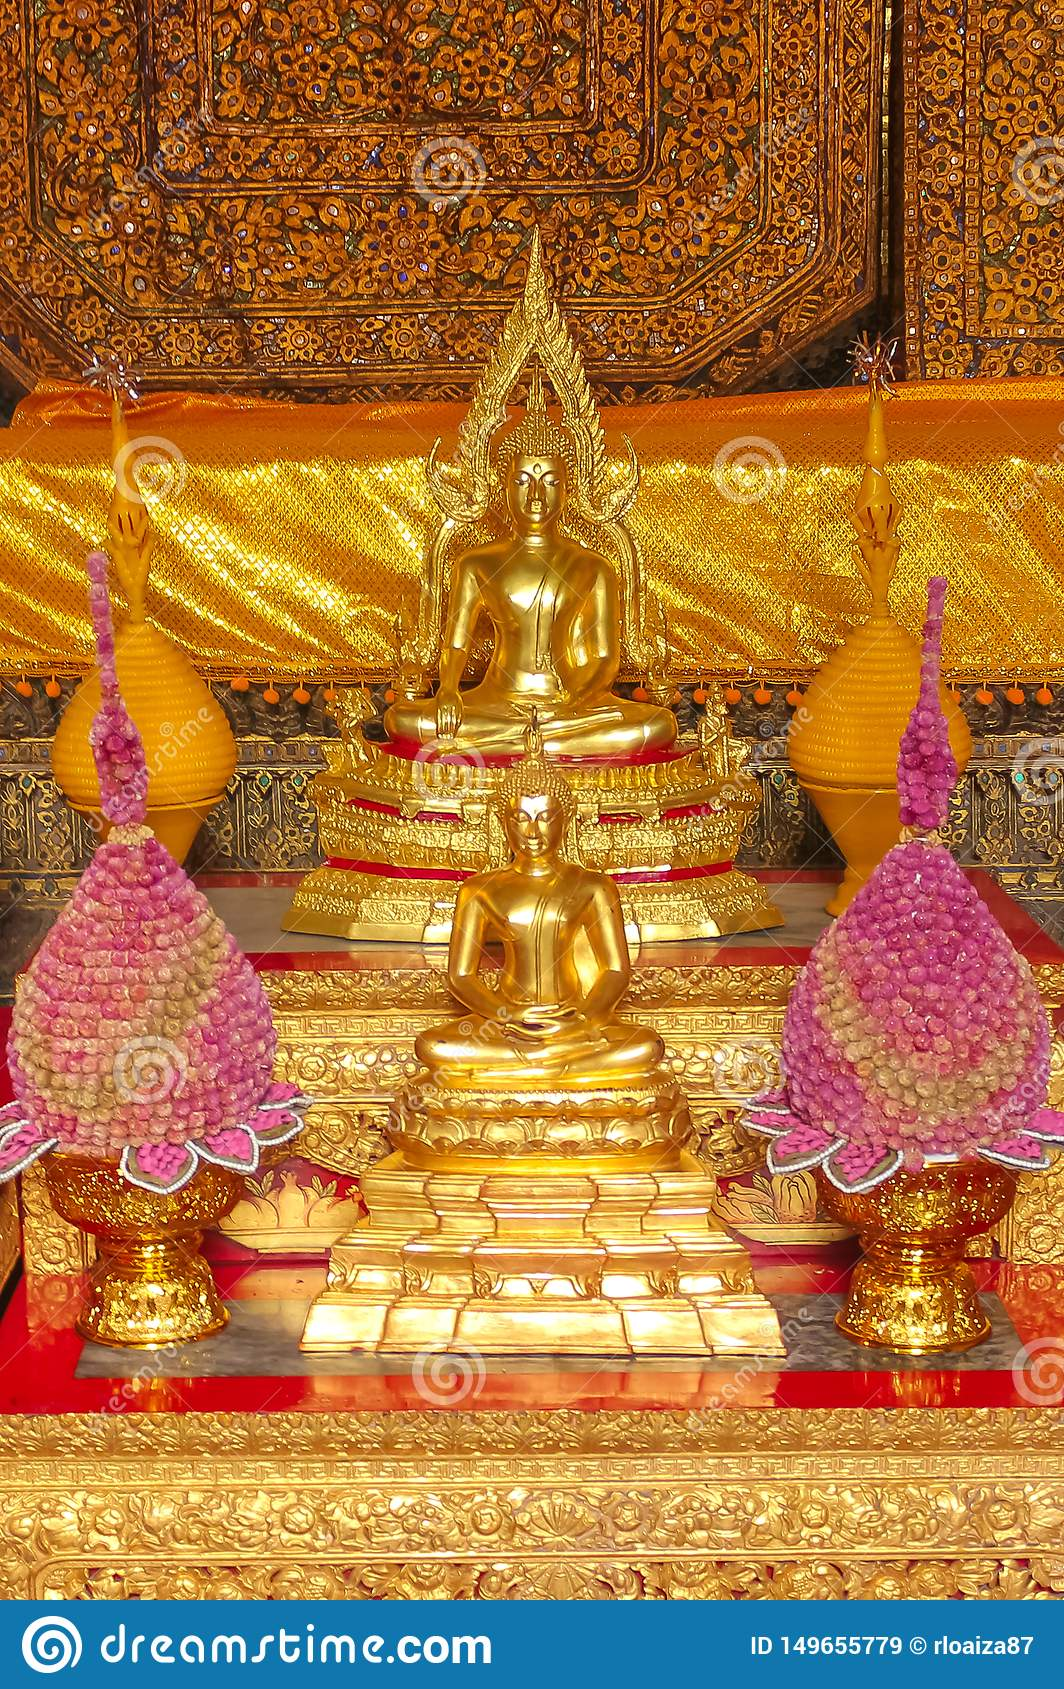 Small altar of worship to Buddha at Wat Phra Kae, Temple of the Emerald Buddha